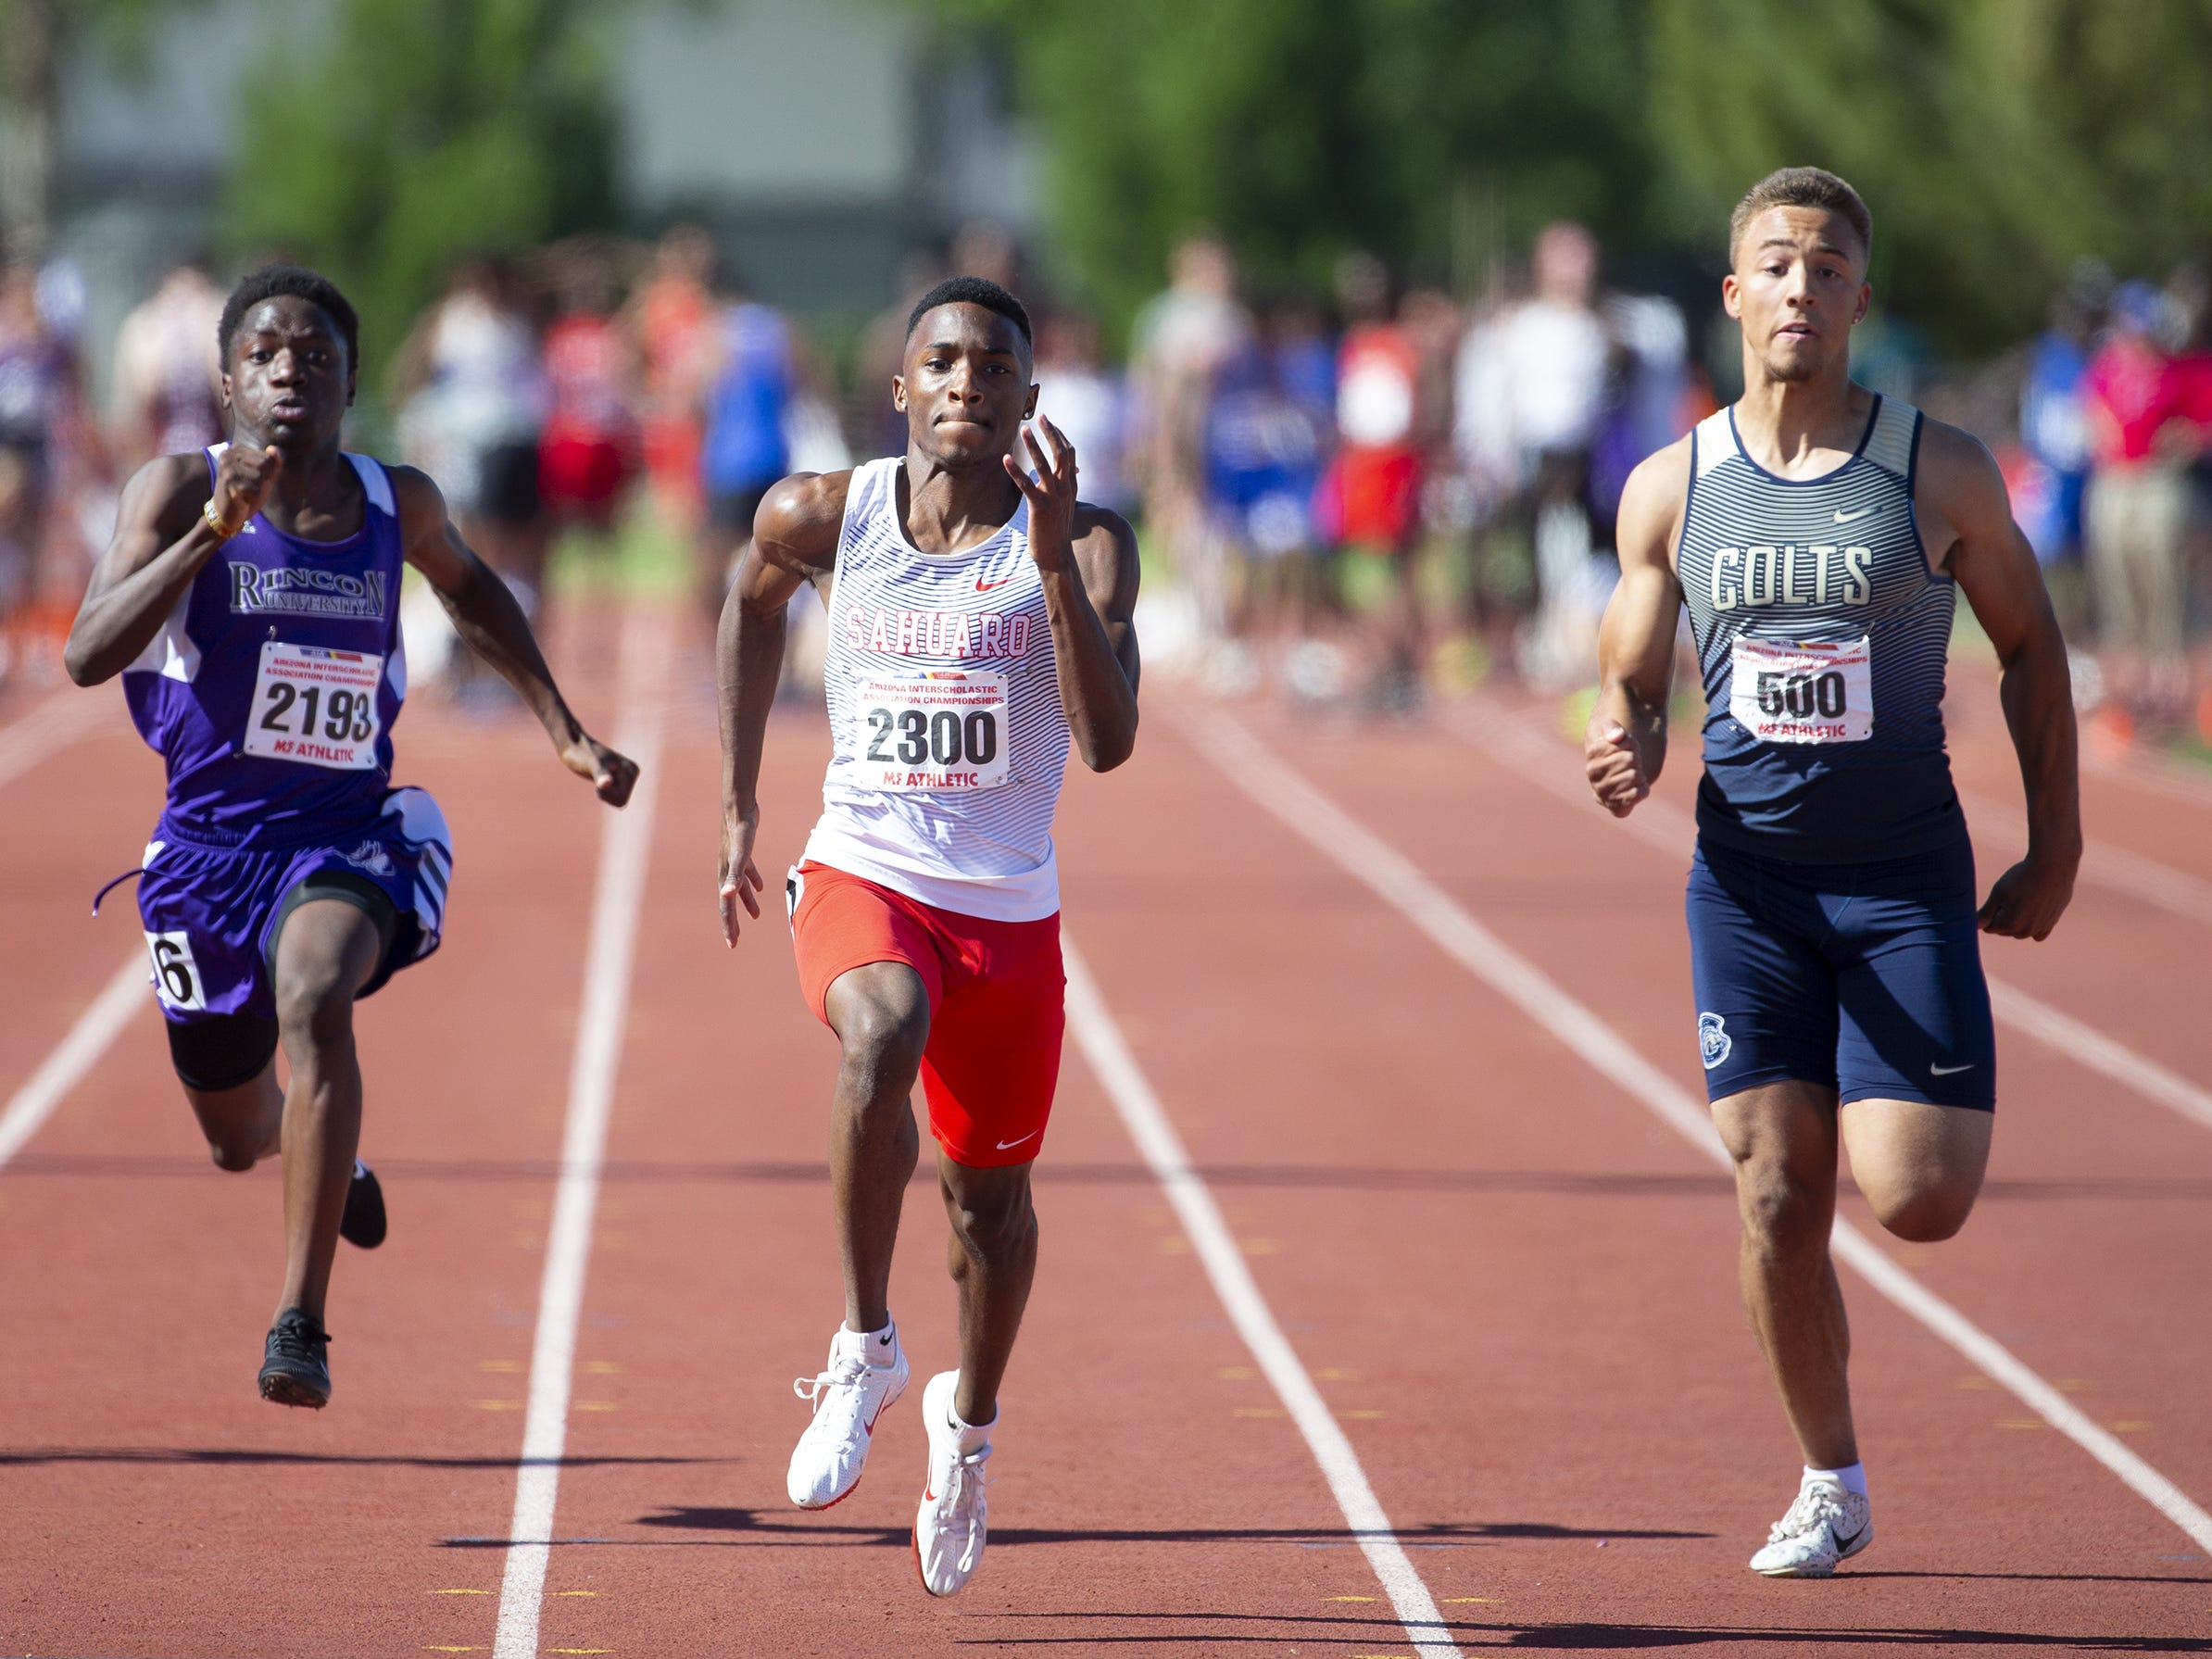 Rincon University's Abdulahi Mohamed, Scottsdale Saquaro Trayvion White, and Casteel's Brandon Thomas compete in the Boys 100 Meter das Div. II during the state track and field meet at Mesa Community college on May 1, 2019.